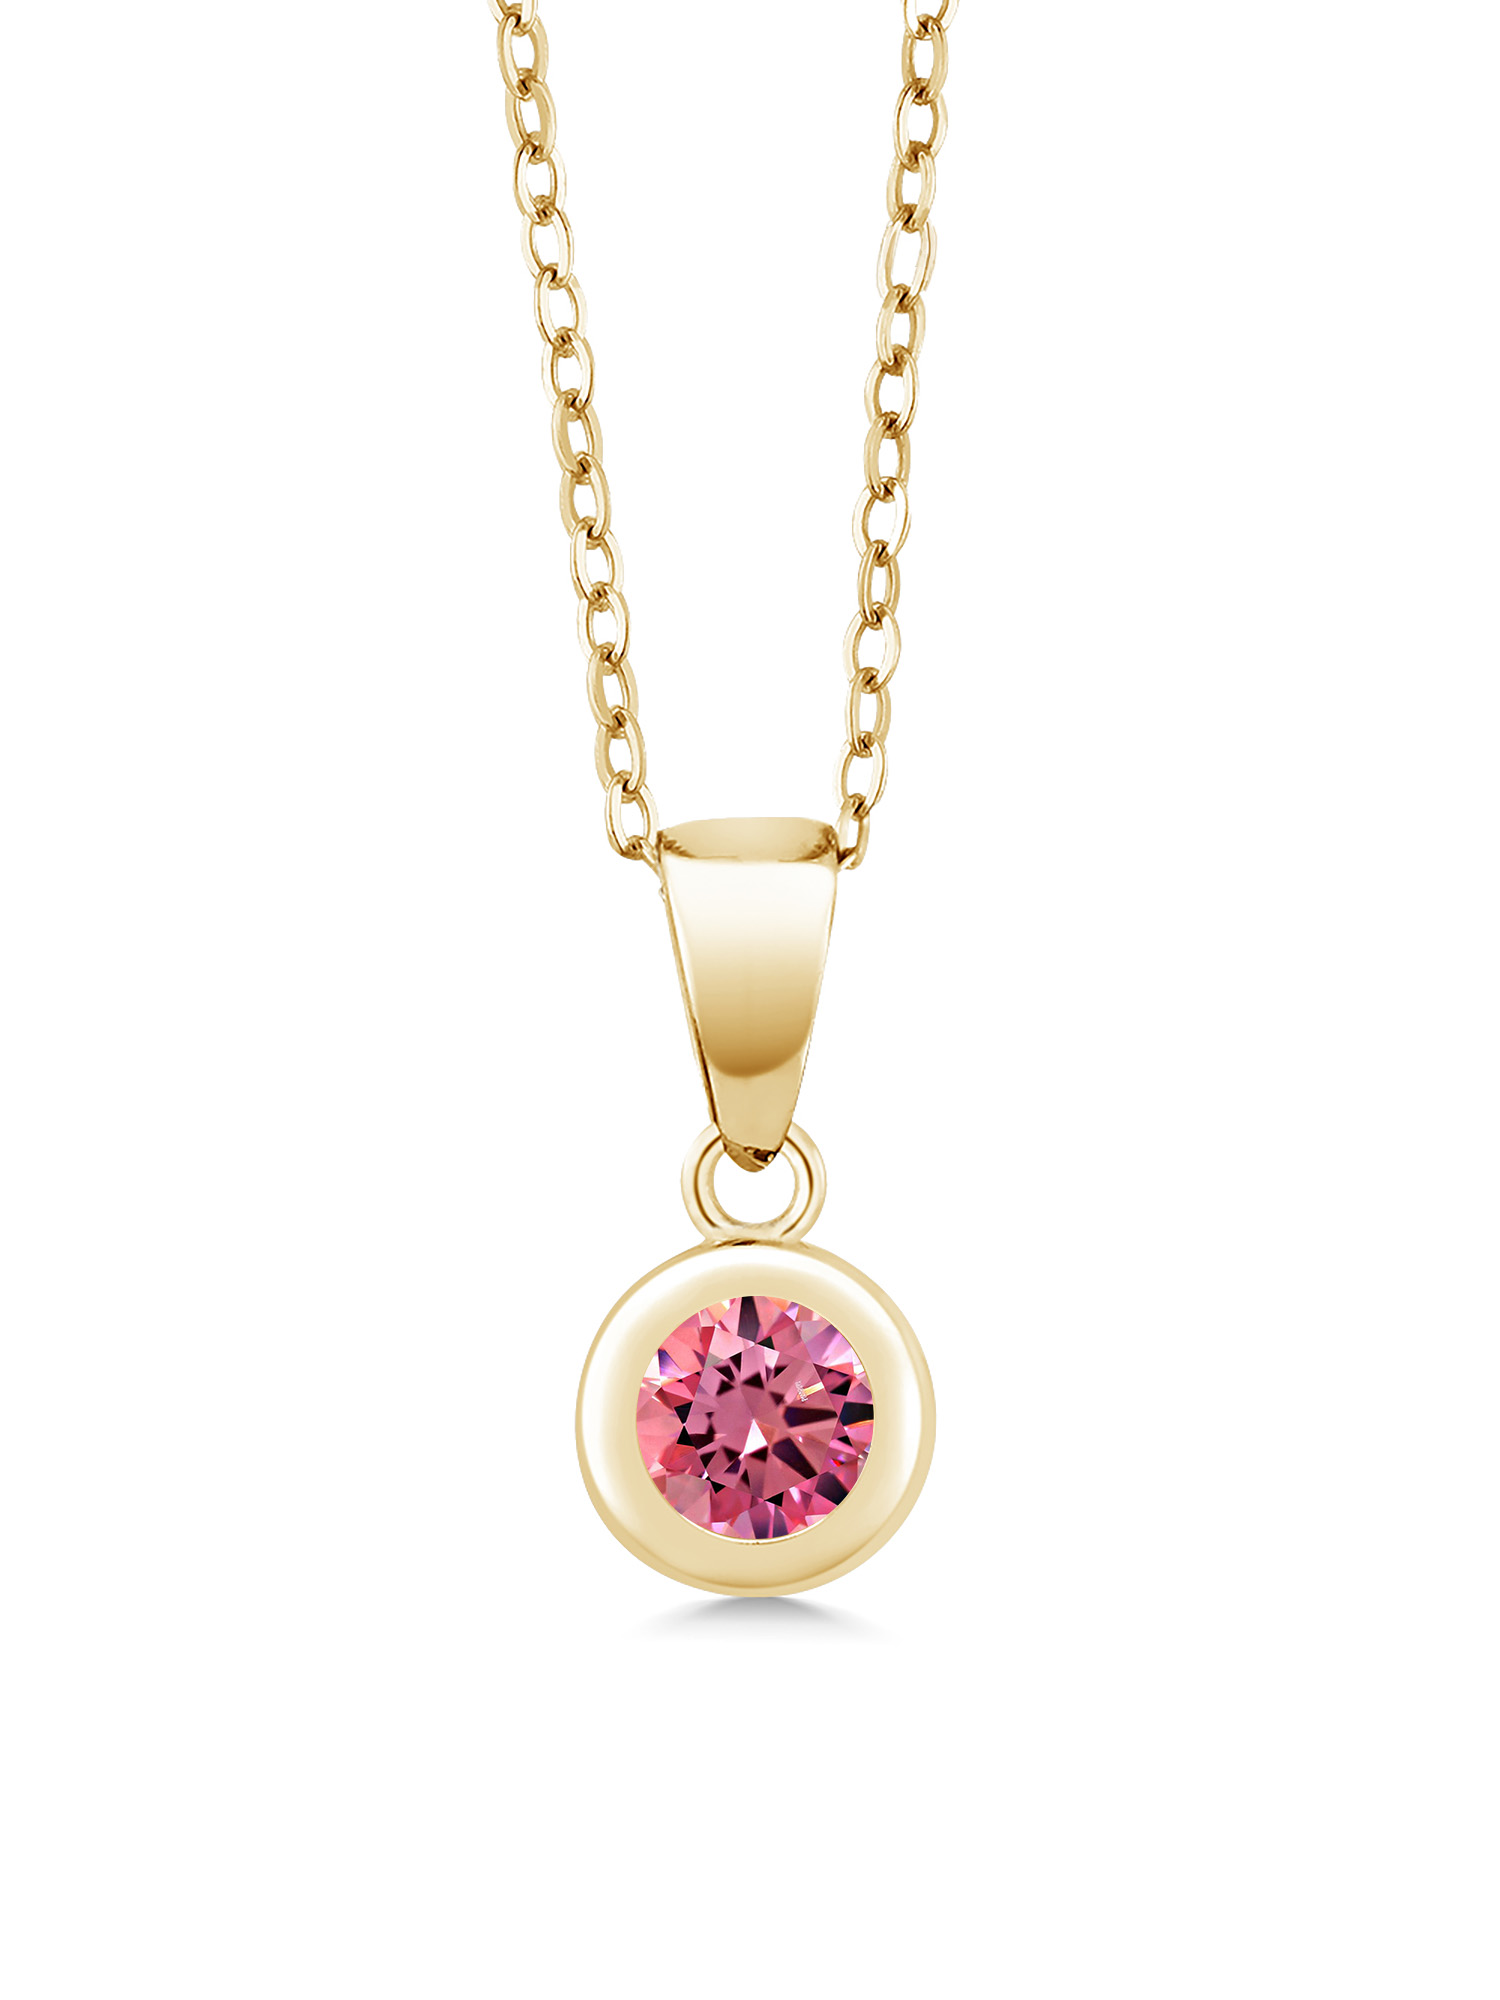 18K Yellow Gold Plated Silver Pendant Set with Fancy Pink Zirconia from Swarovski by